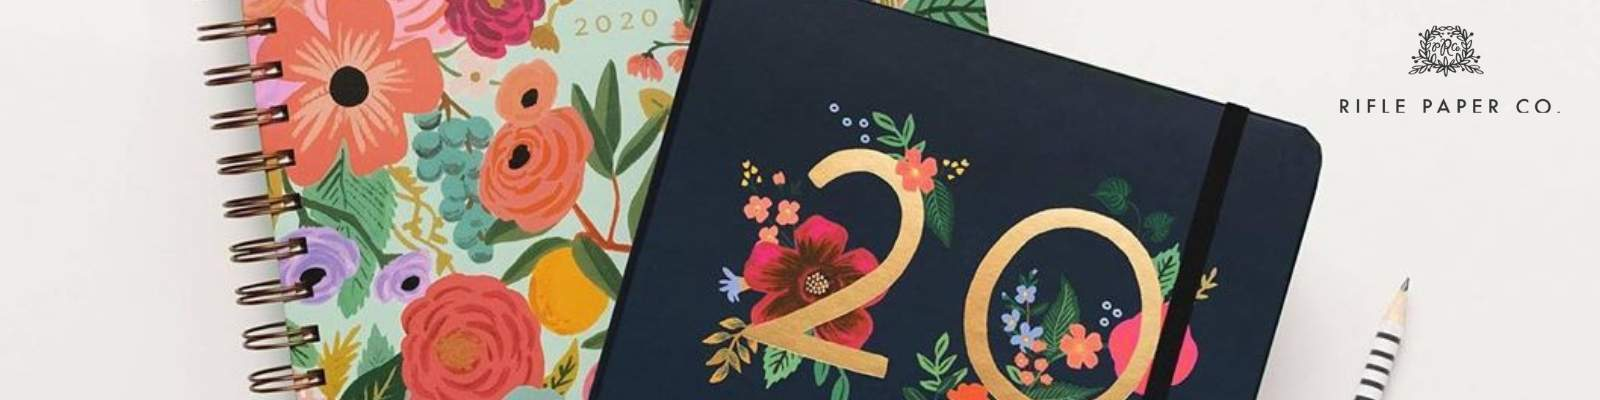 rifle paper co 2020 diaries